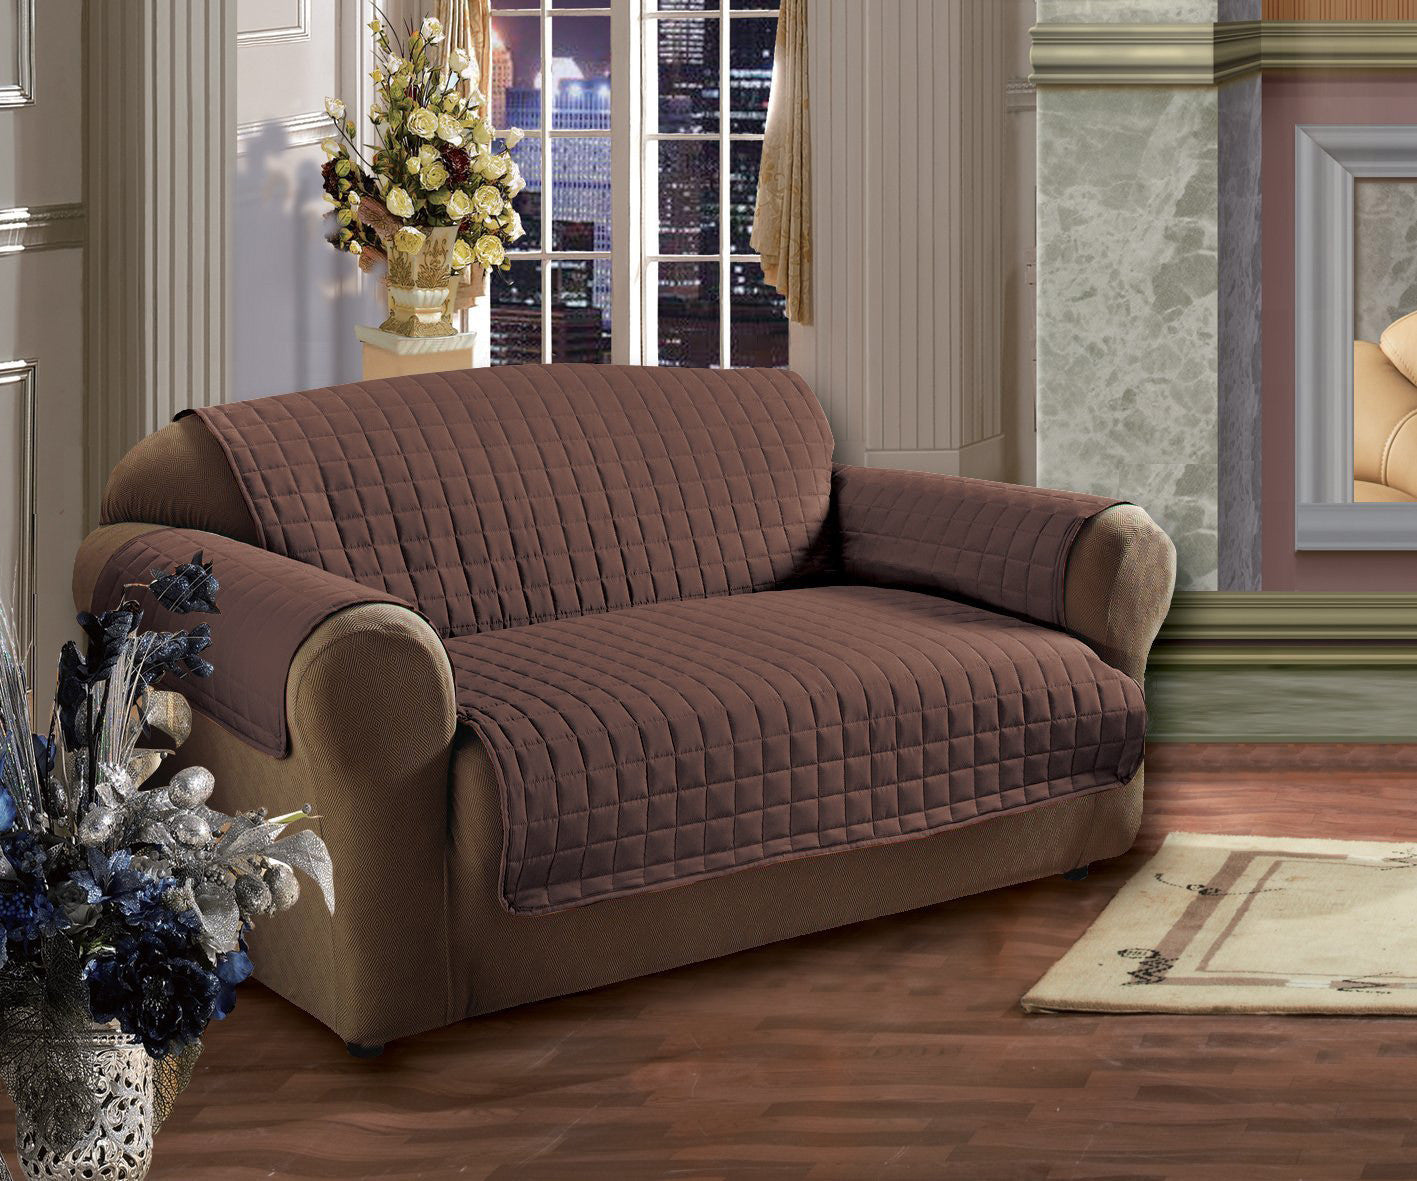 CHOCOLATE BROWN QUILTED SUEDE PROTECTIVE FURNITURE SOFA LOVE SEAT /& CHAIR COVER